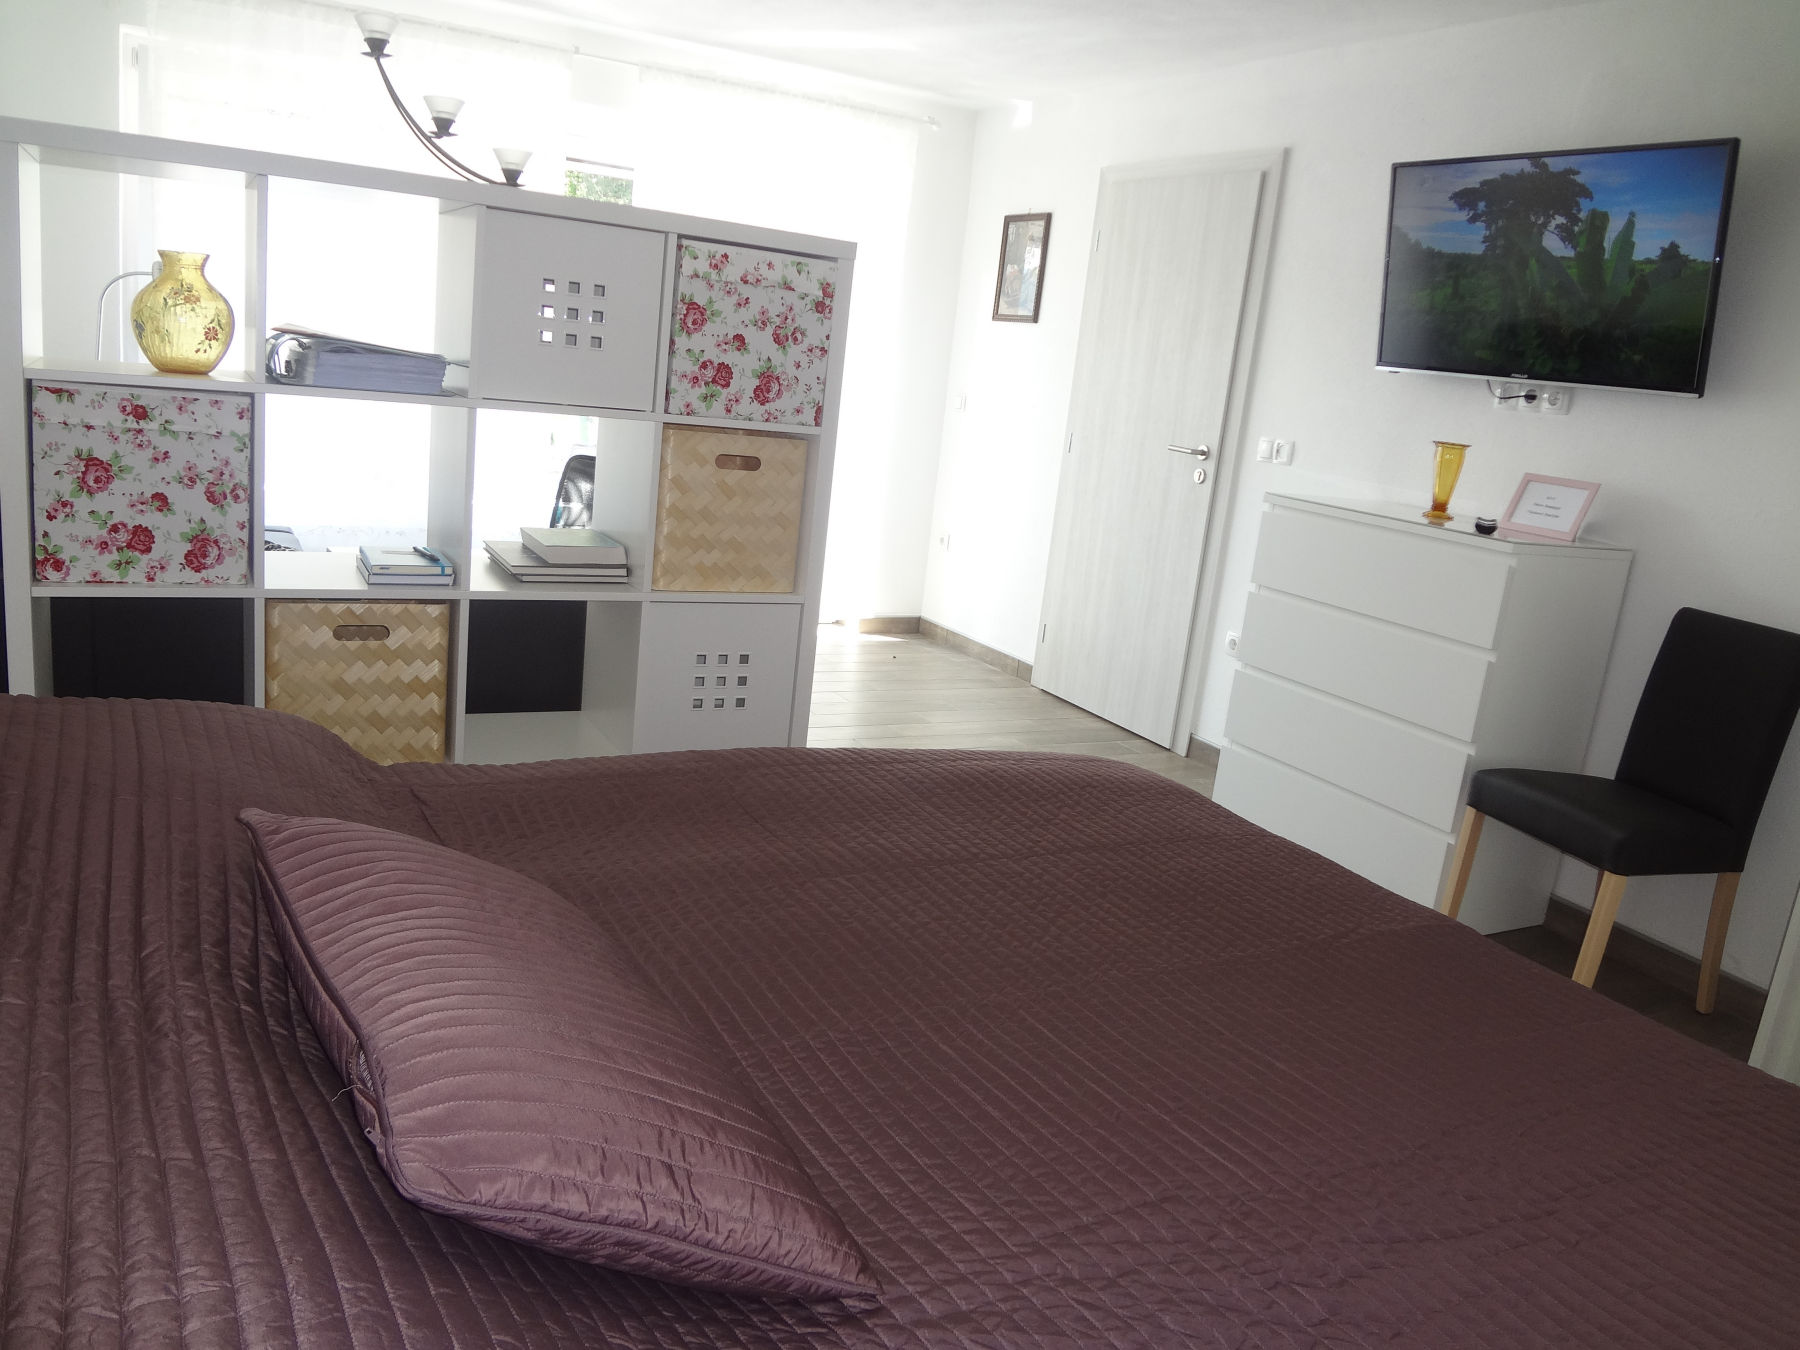 First Bedroom With Double Bed In The Fine Stay Apartment, The Bled Area Of  Slovenia